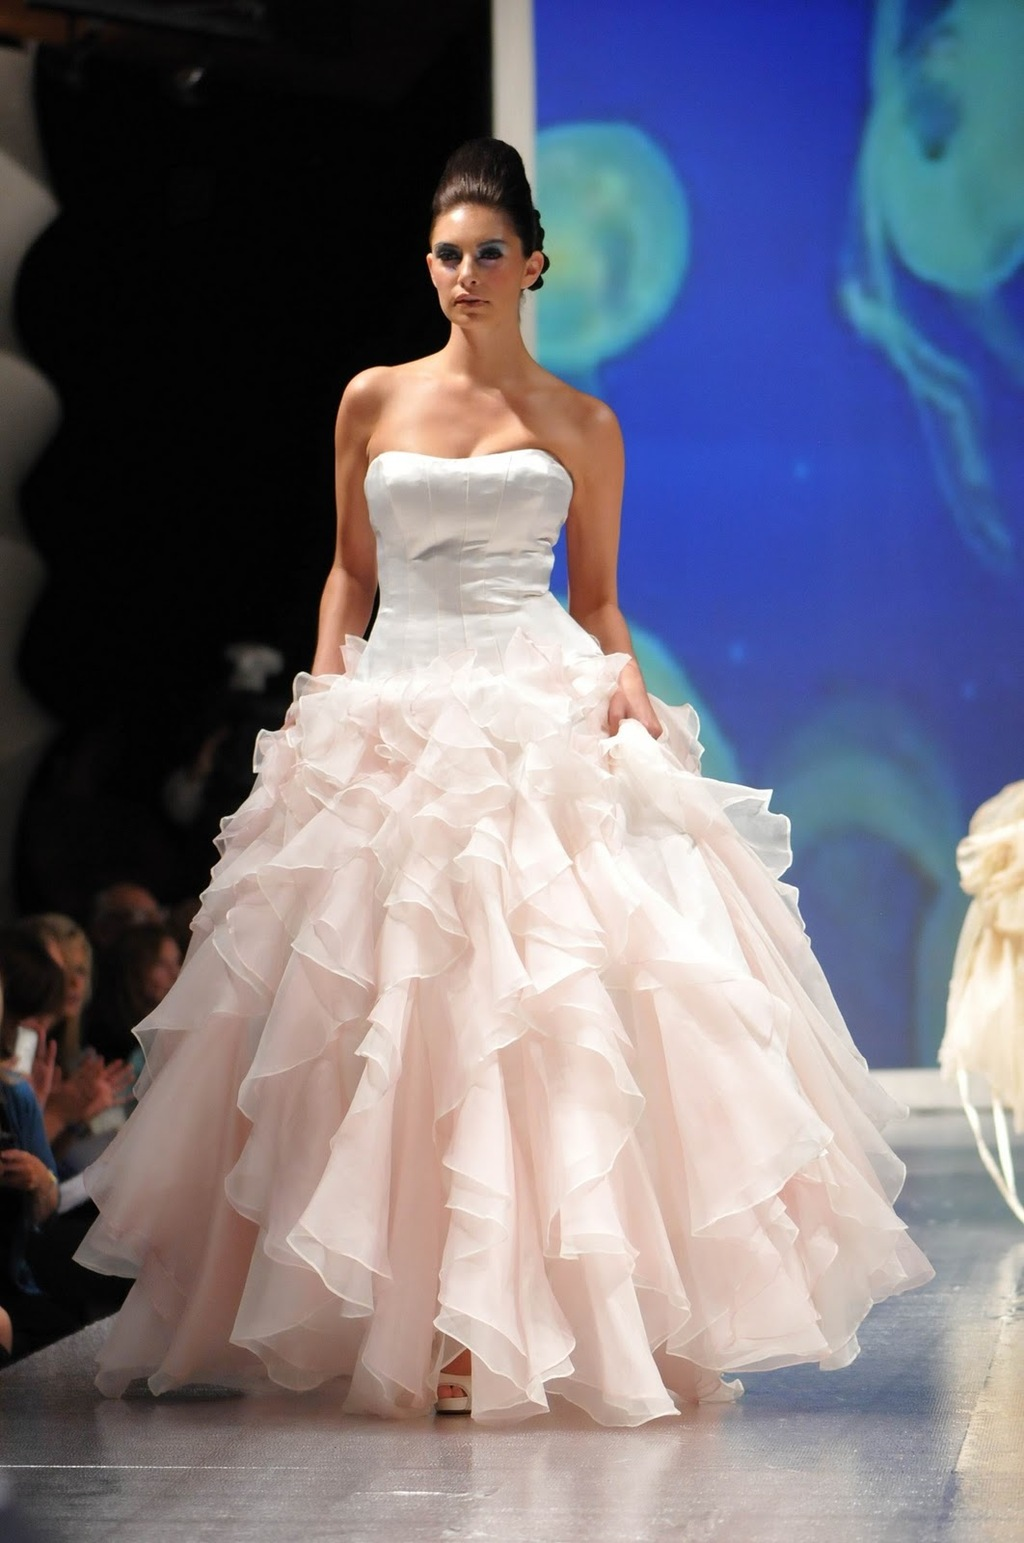 Luly-yang-2011-wedding-dress-inspireation-ocean-white-strapless-4.full